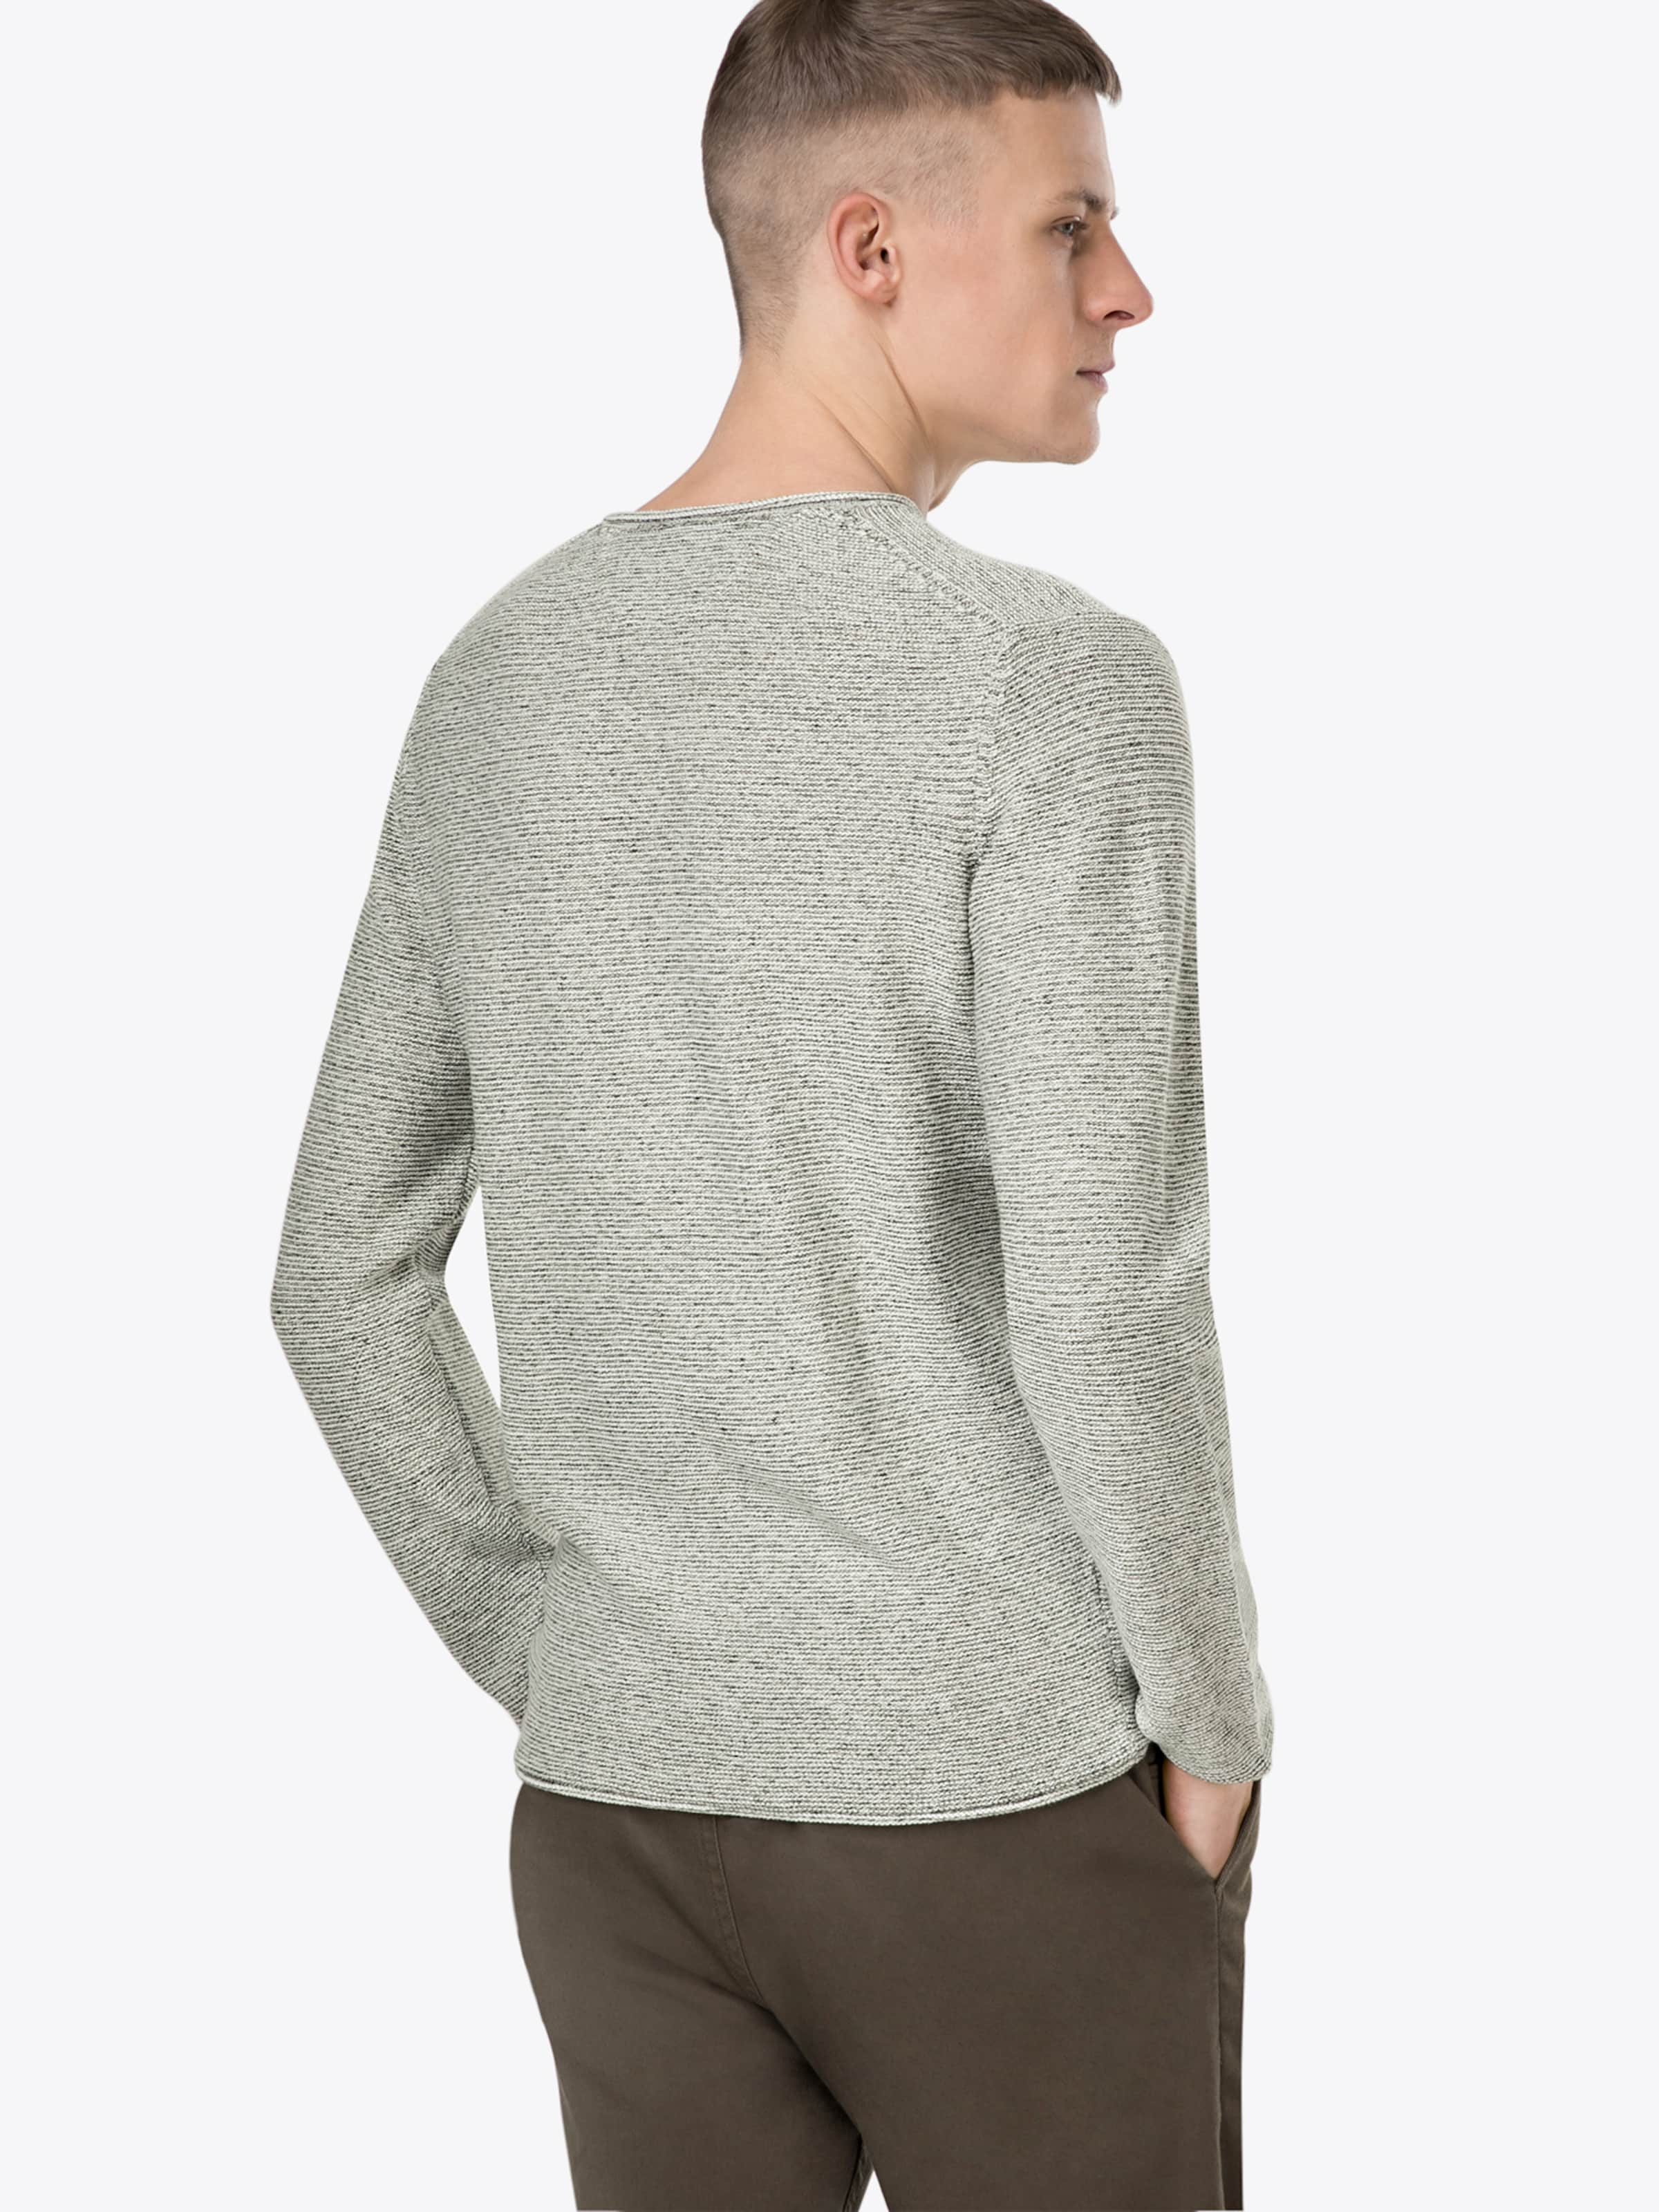 Rauchgrau 'crew Co' O'polo Pullover Marc Neck 69 31 Li In eDH9YIWEb2